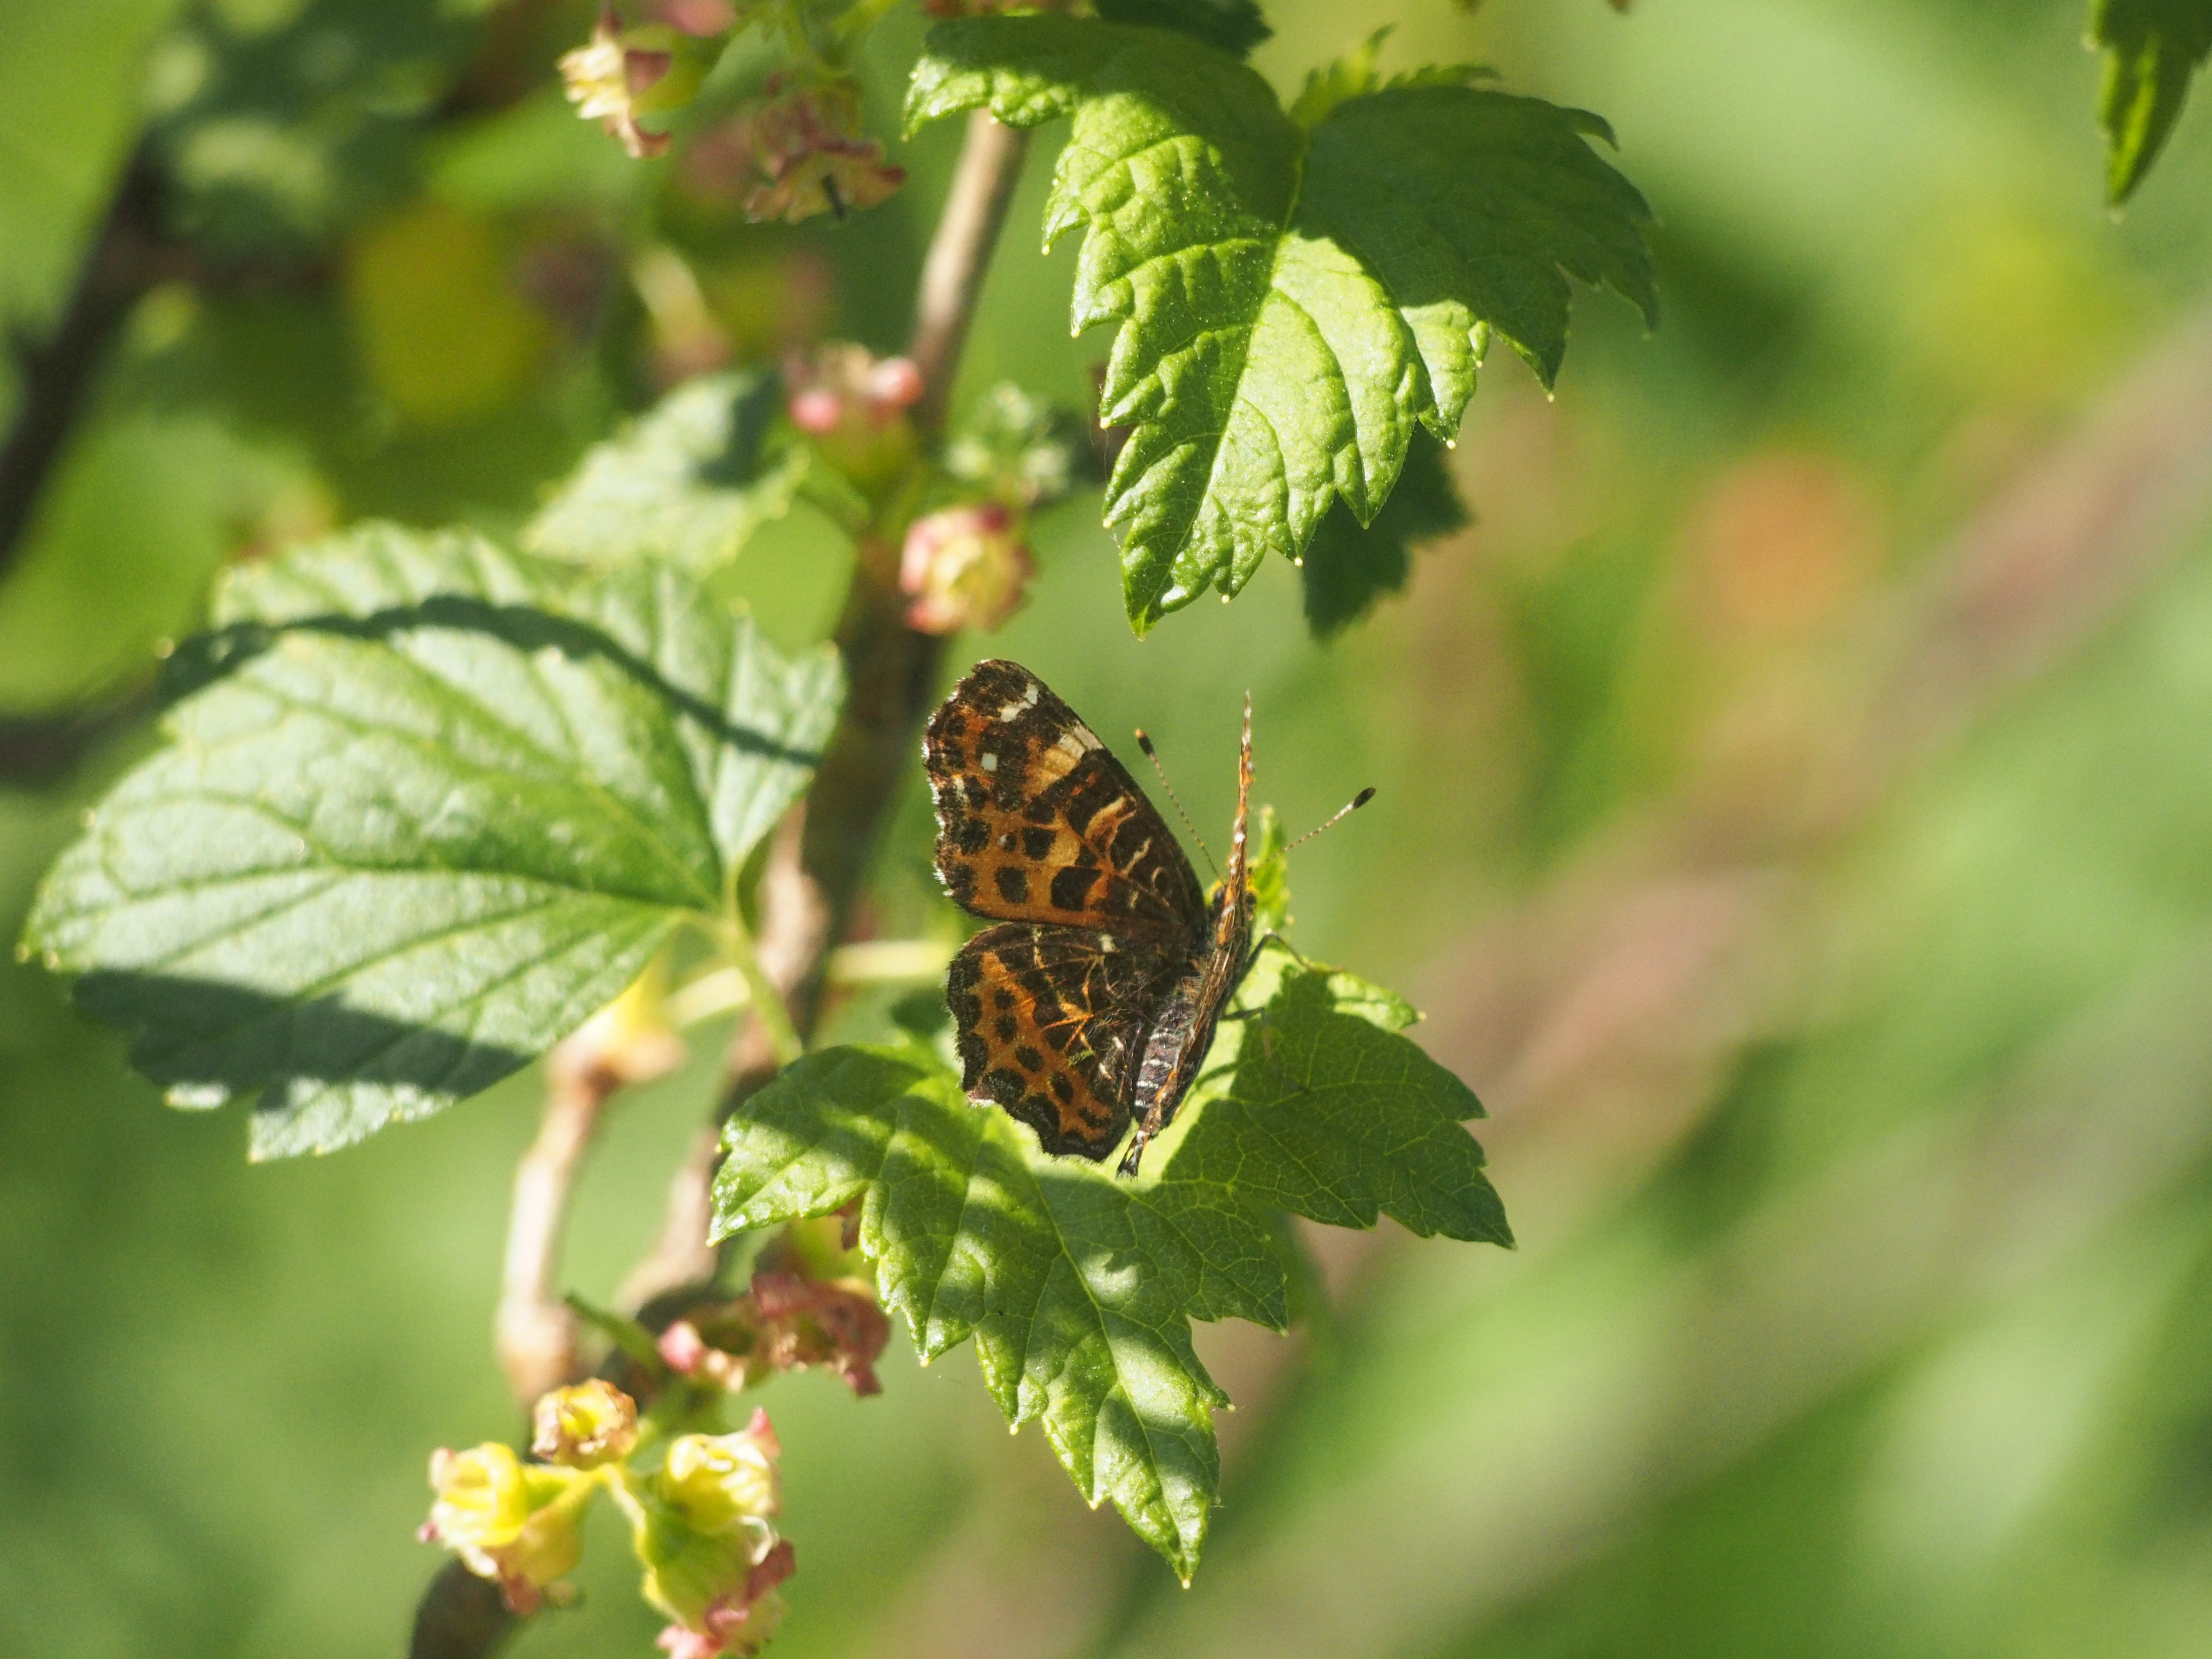 Free stock photo of #blurry, #butterfly, #green, #nature